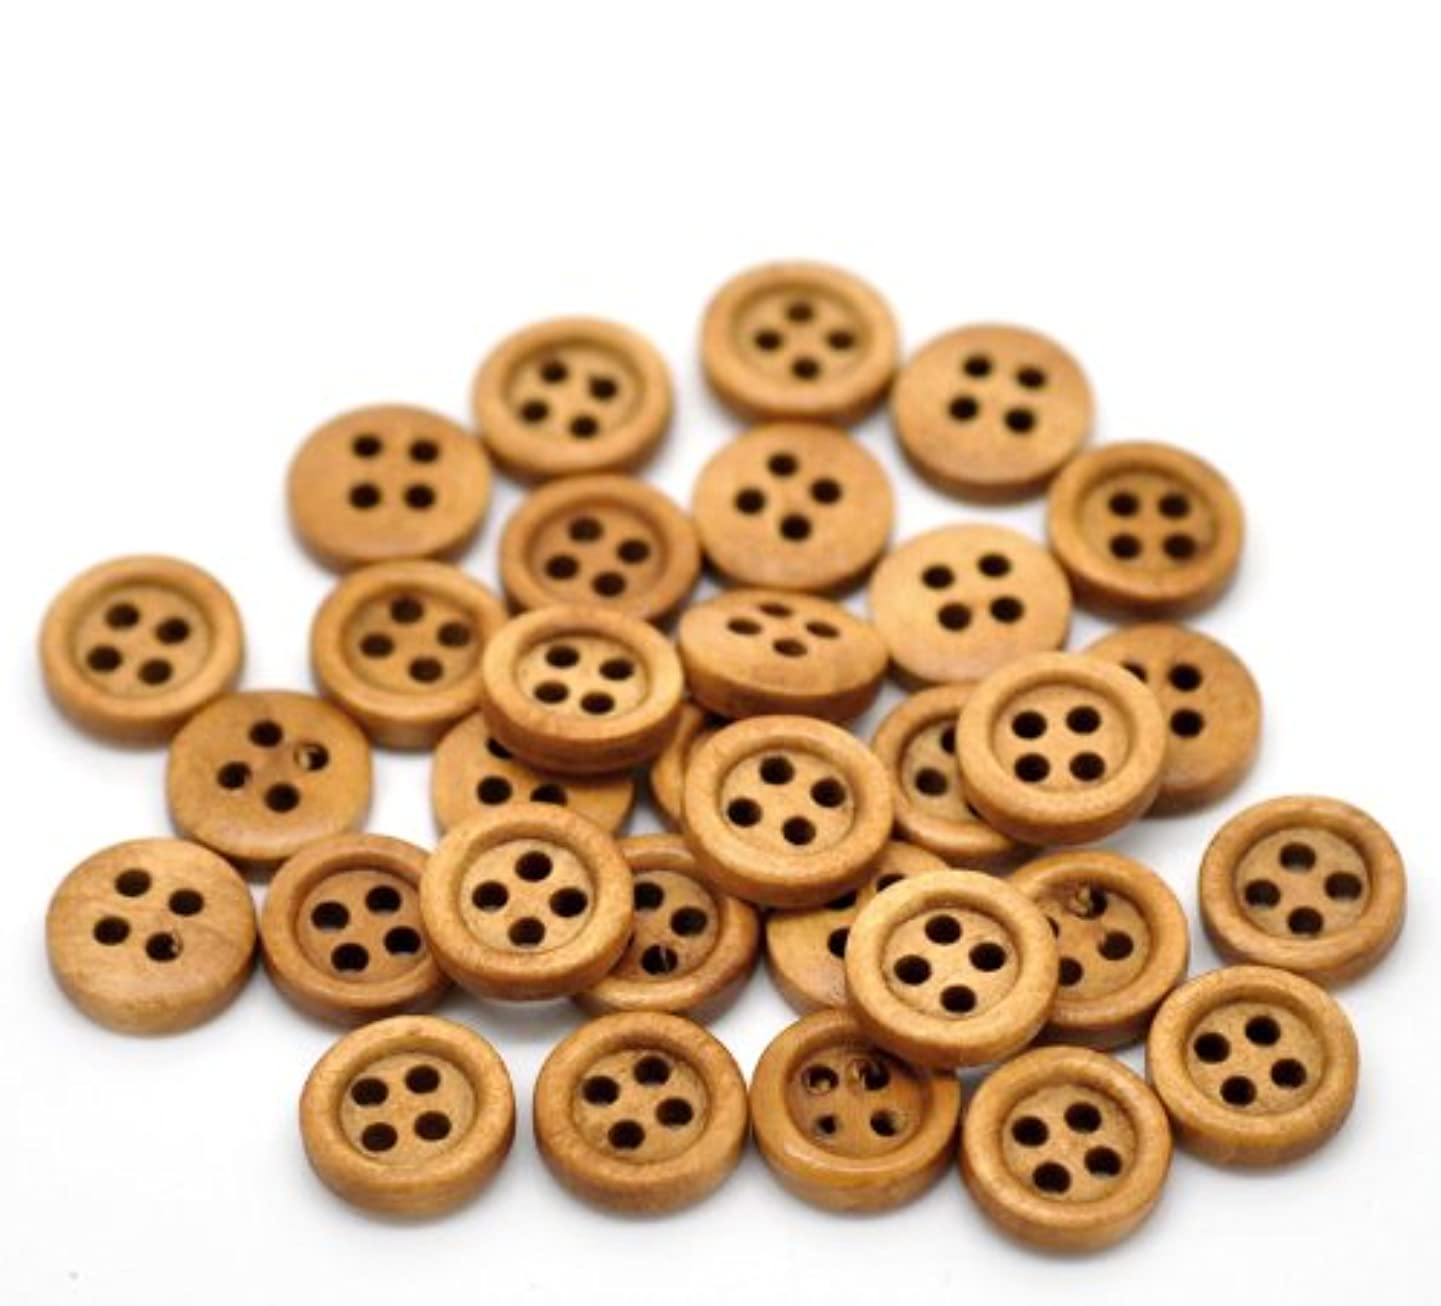 PEPPERLONELY Brand 200PC Natural 4 Hole Scrapbooking Sewing Wood Buttons 11mm ( 3/8 Inch)